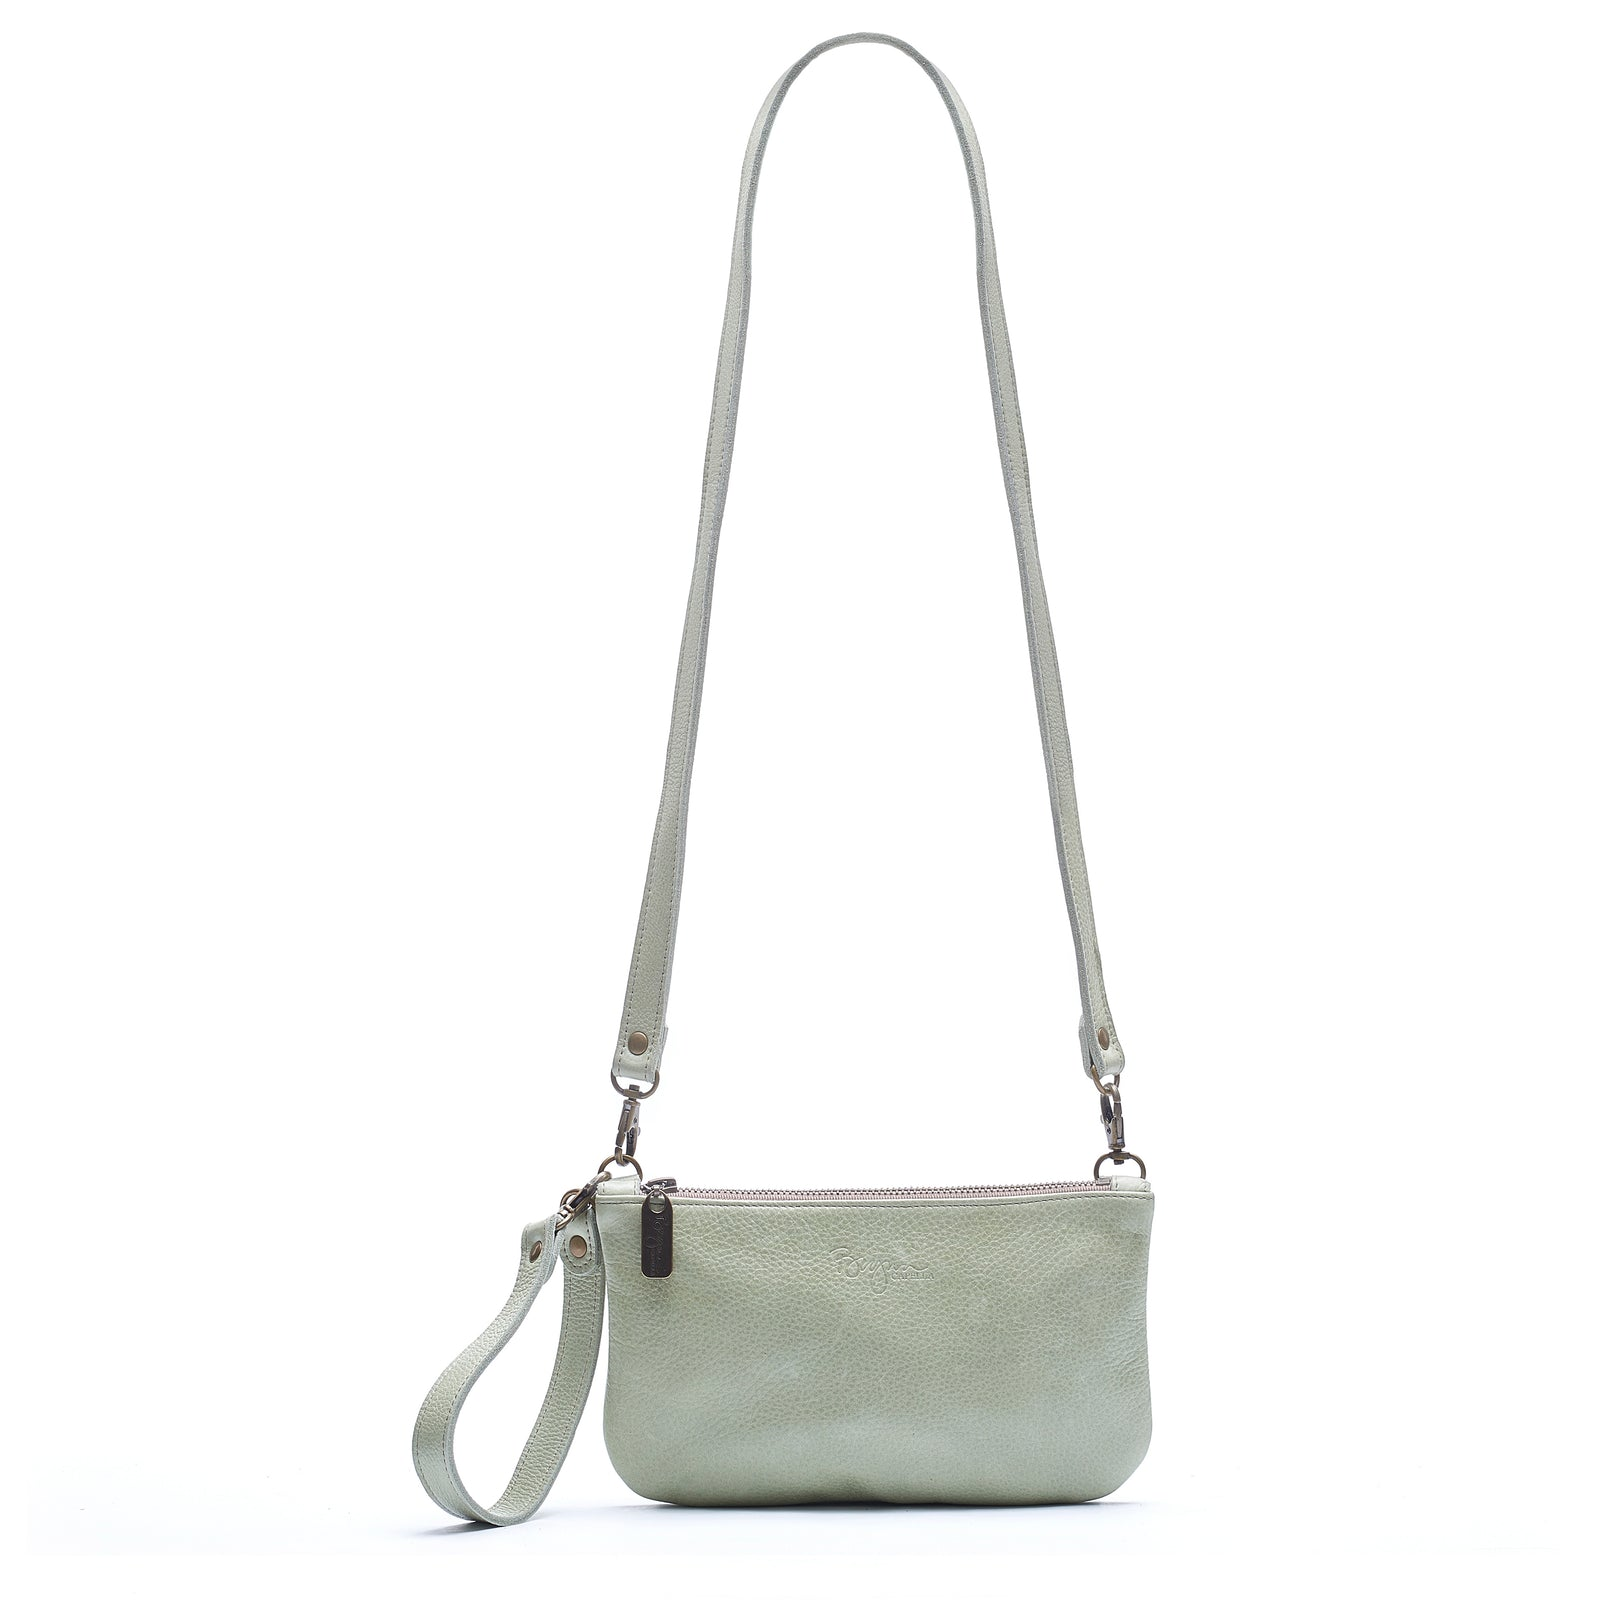 Cher Crossbody - Bora Bora - Brynn Capella, Mini Crossbody